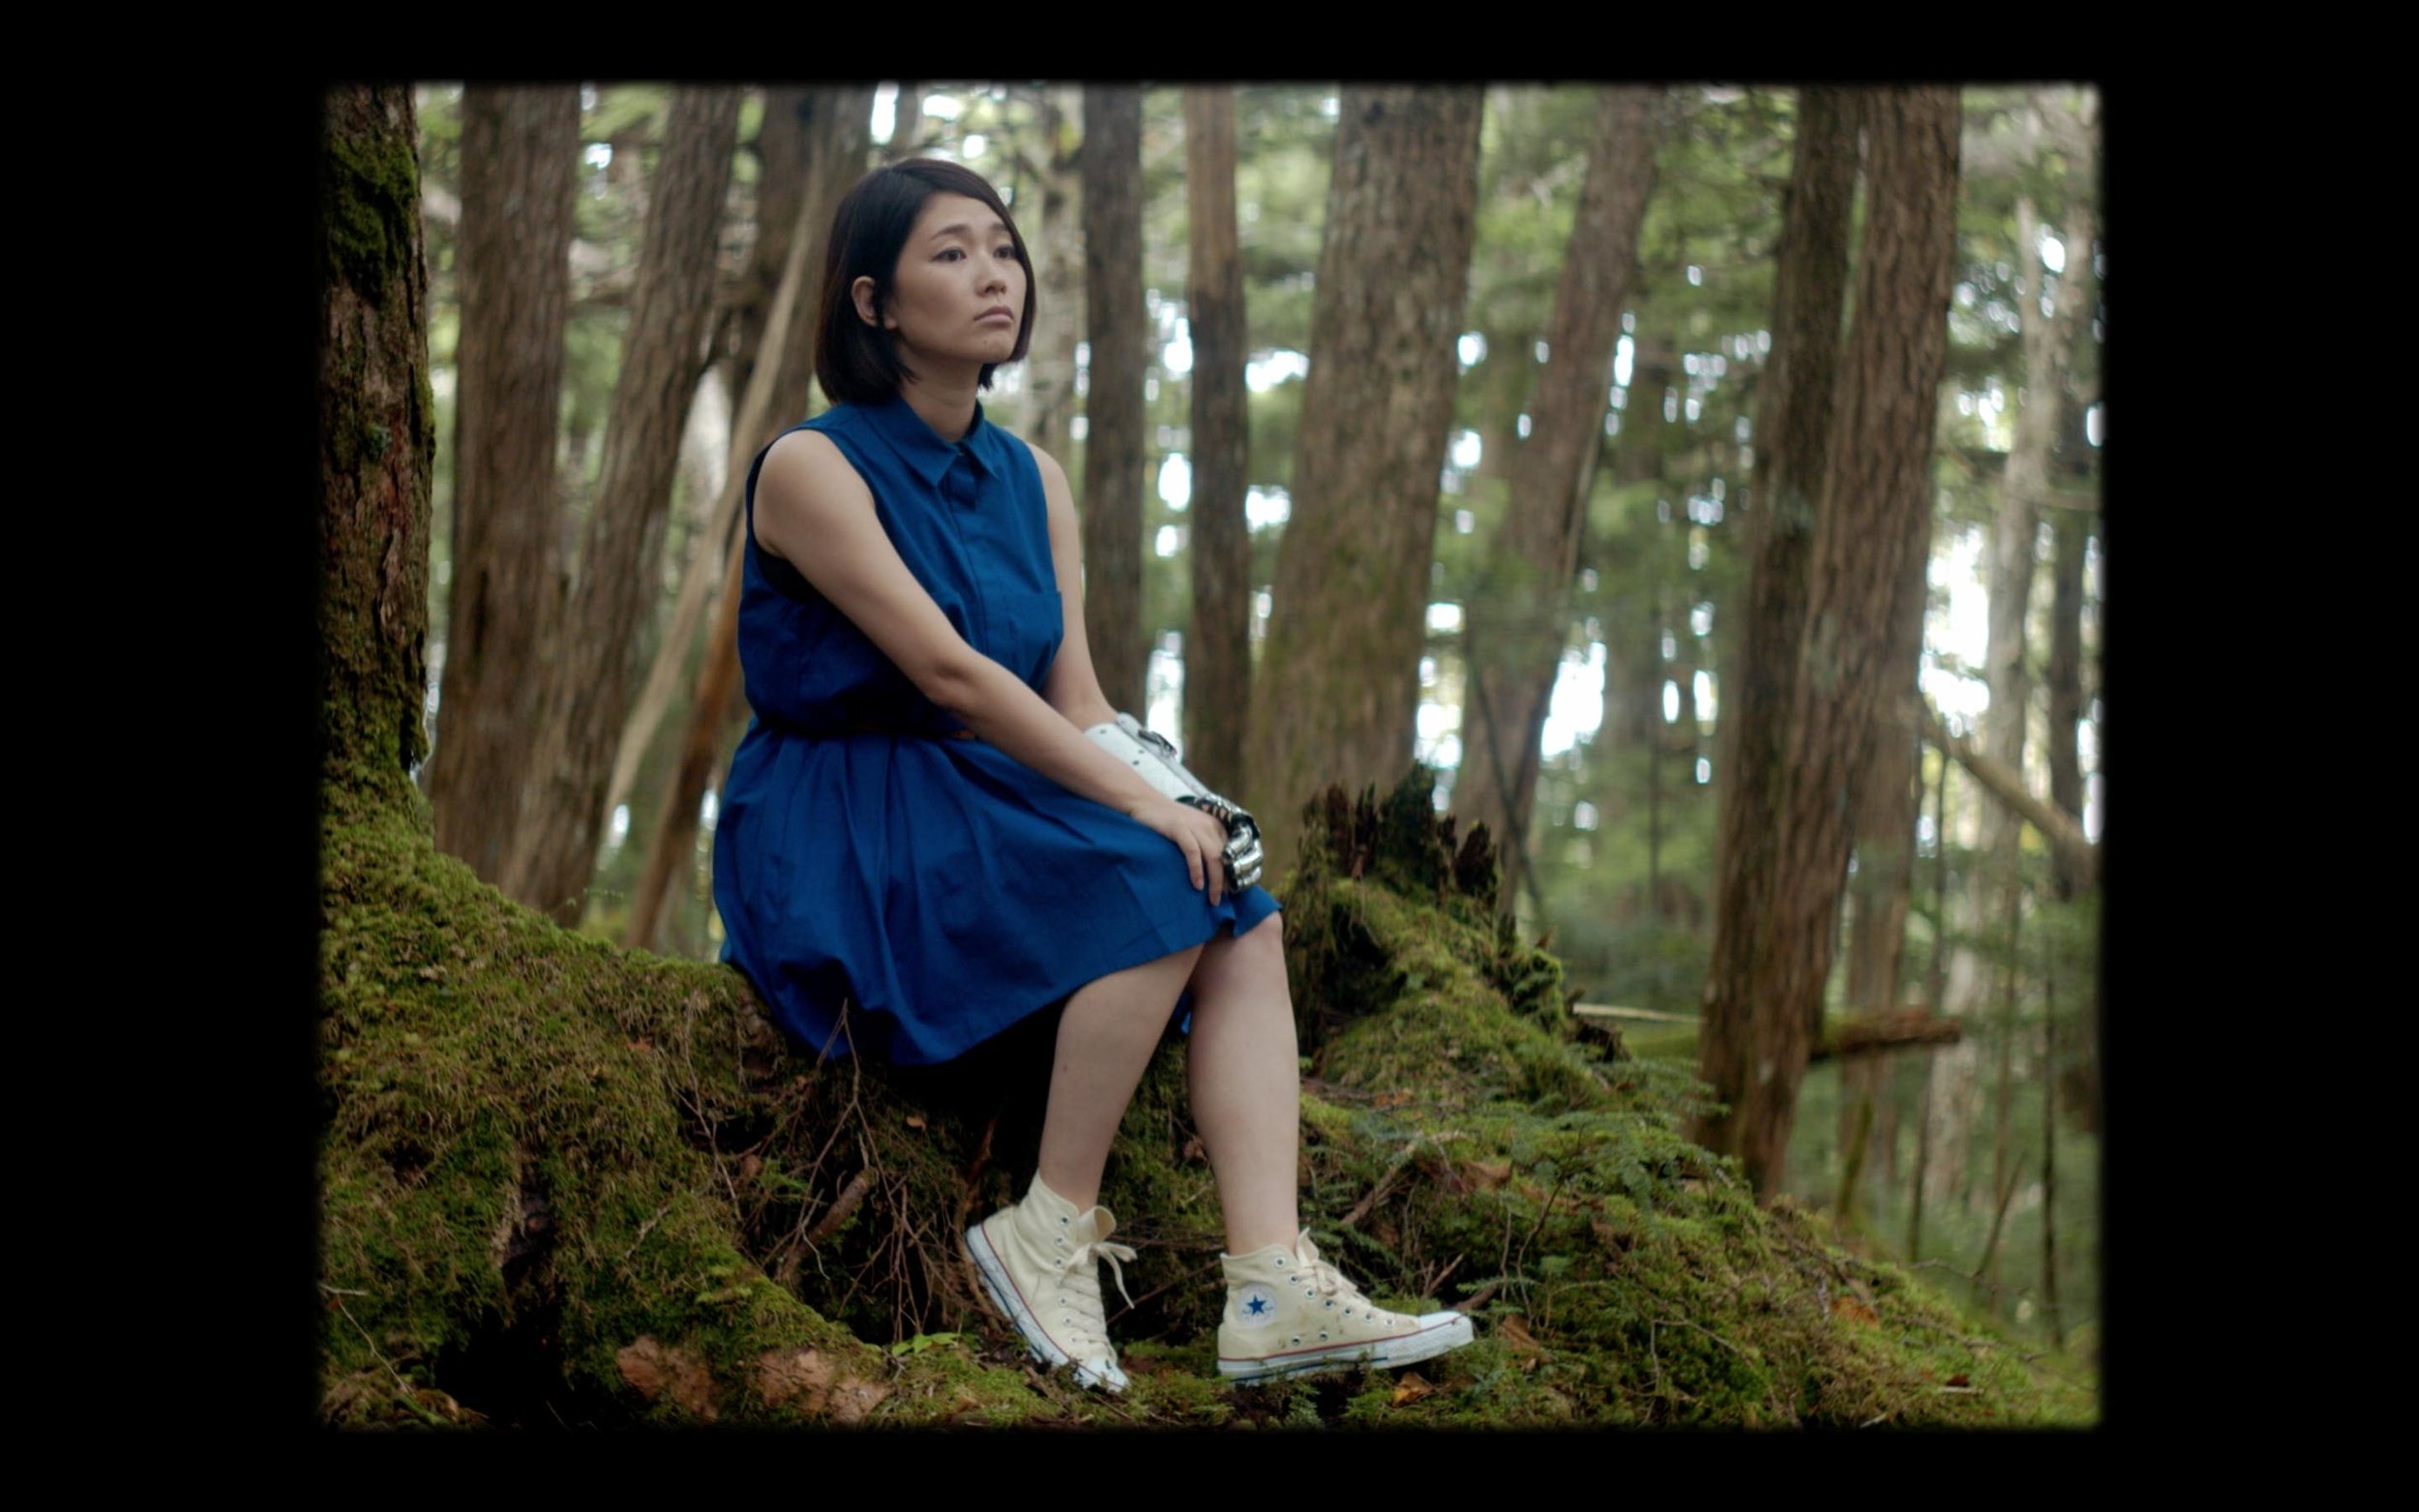 Forest Japan Dendro Blue Green Vans Cinematography Girl Tree